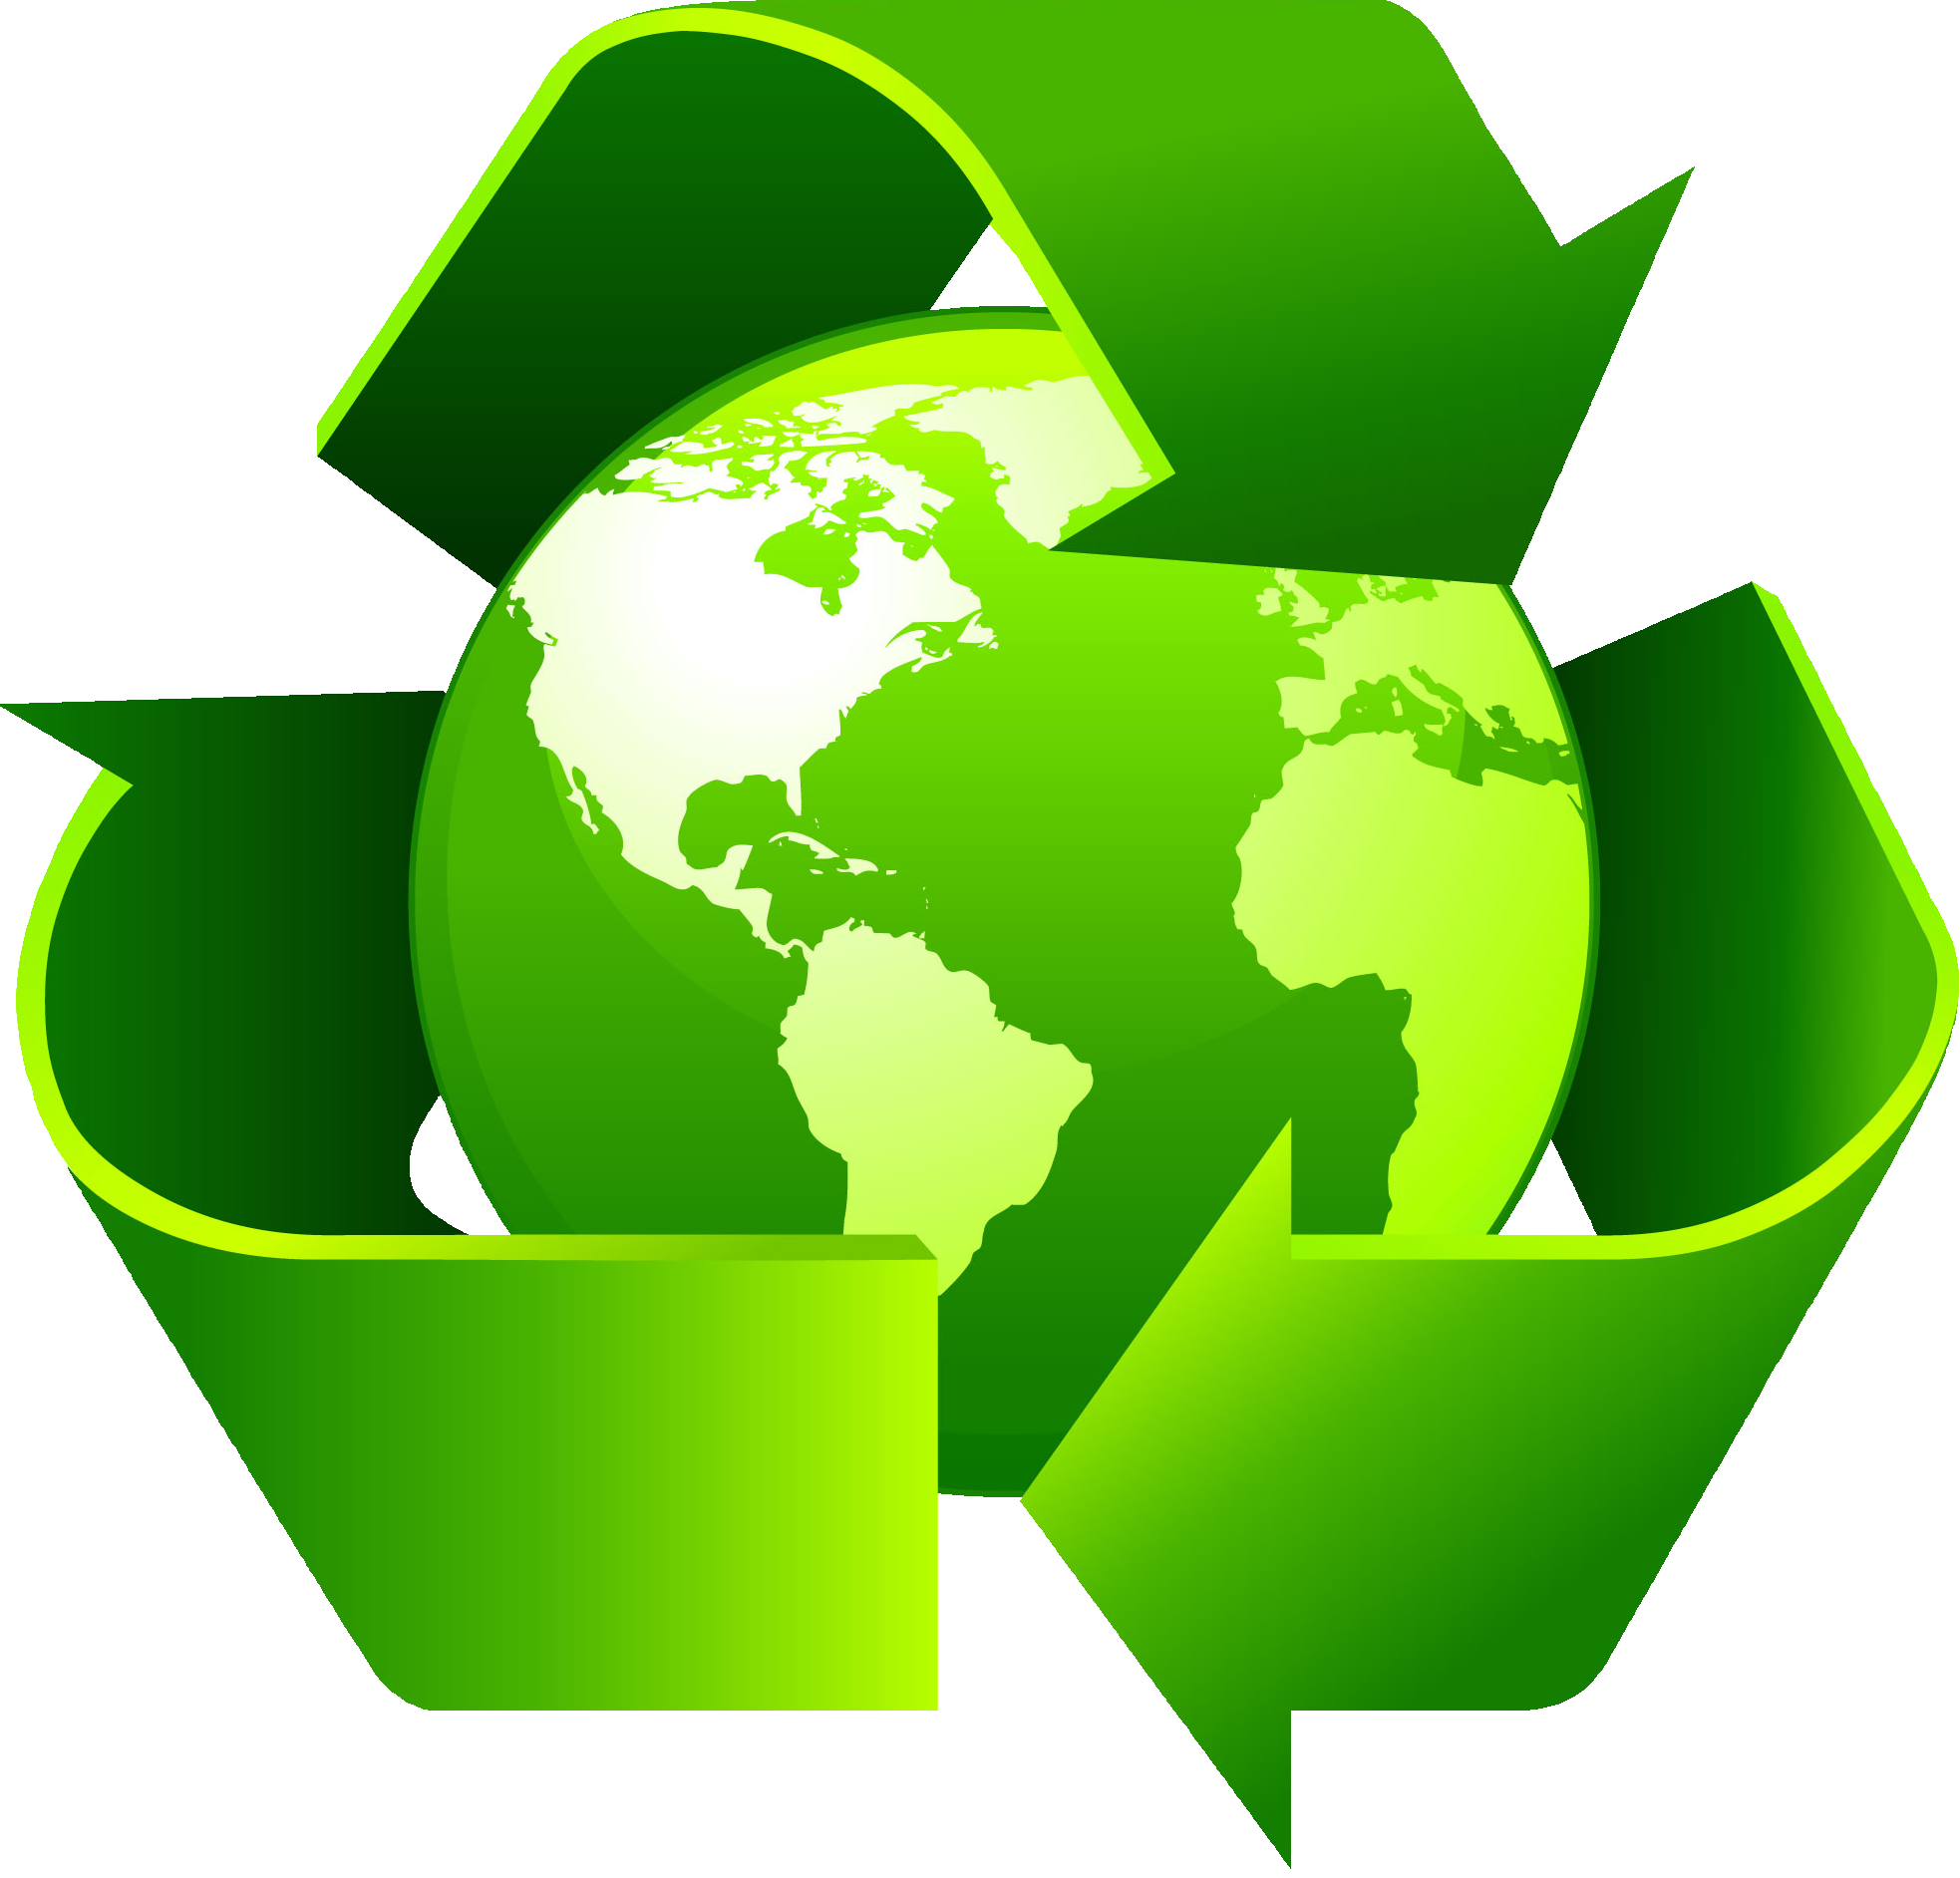 Bin Shawnee Business Environment Sustainability Recycle Waste PNG Image